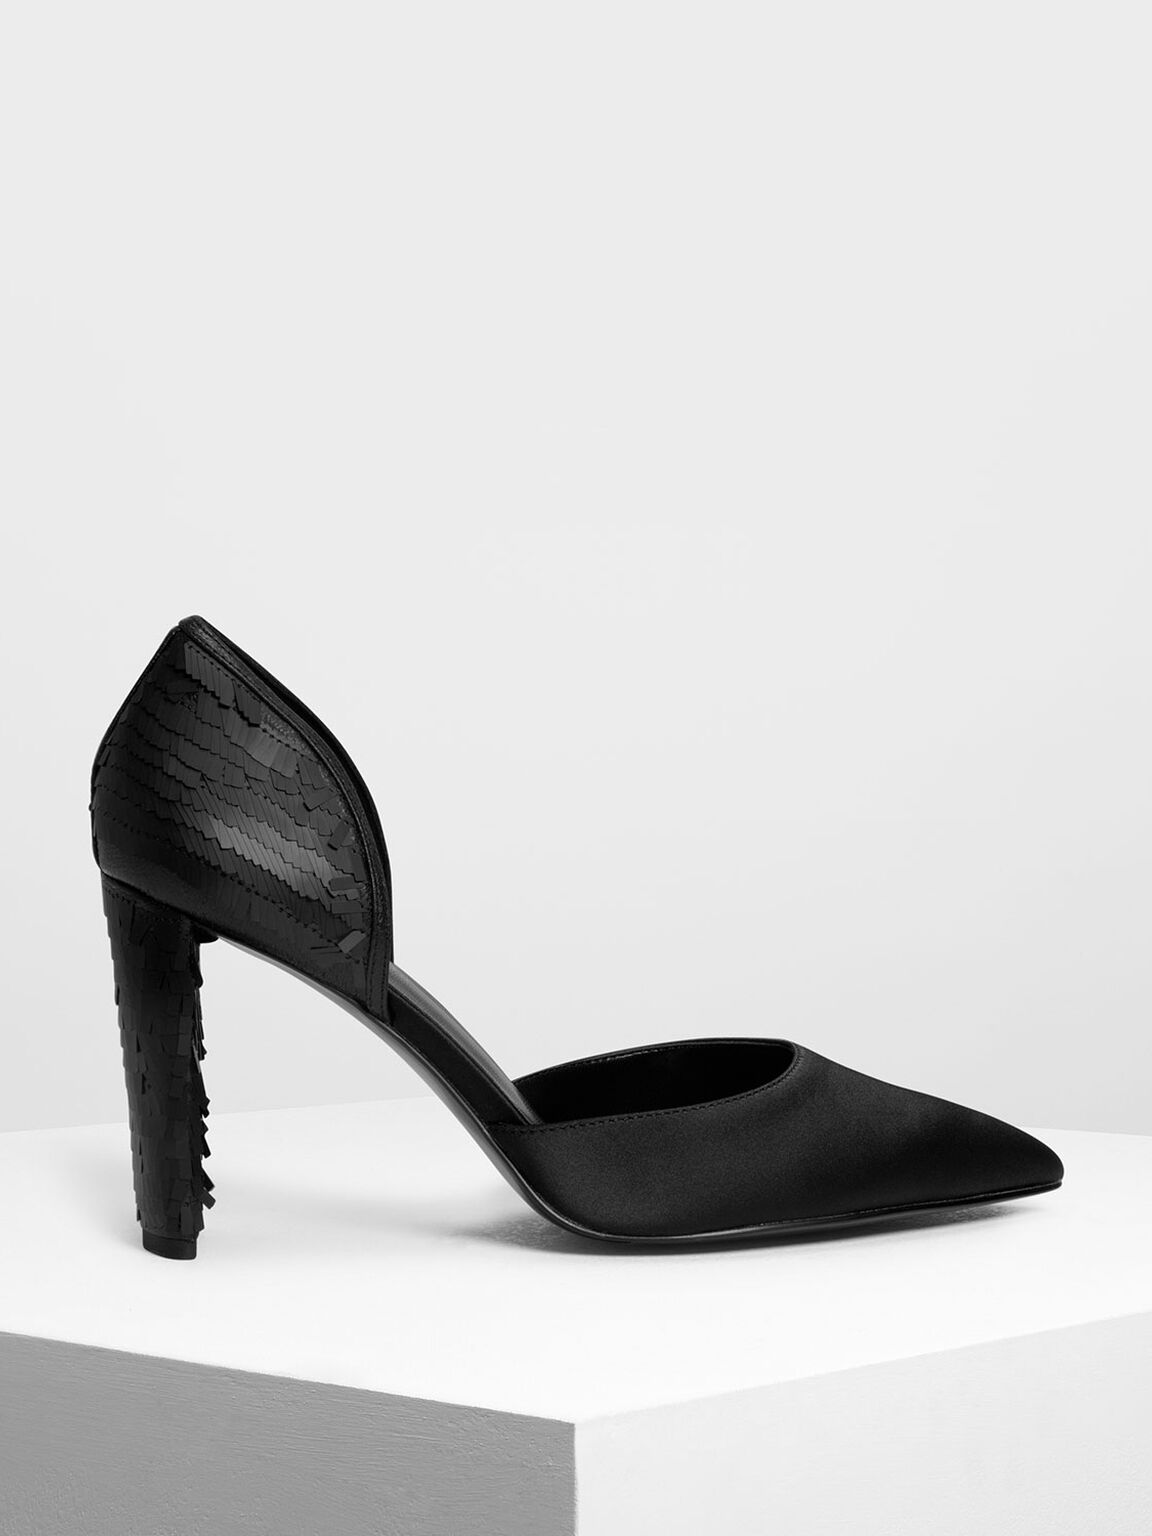 Sequin D'orsay Pumps, Black, hi-res